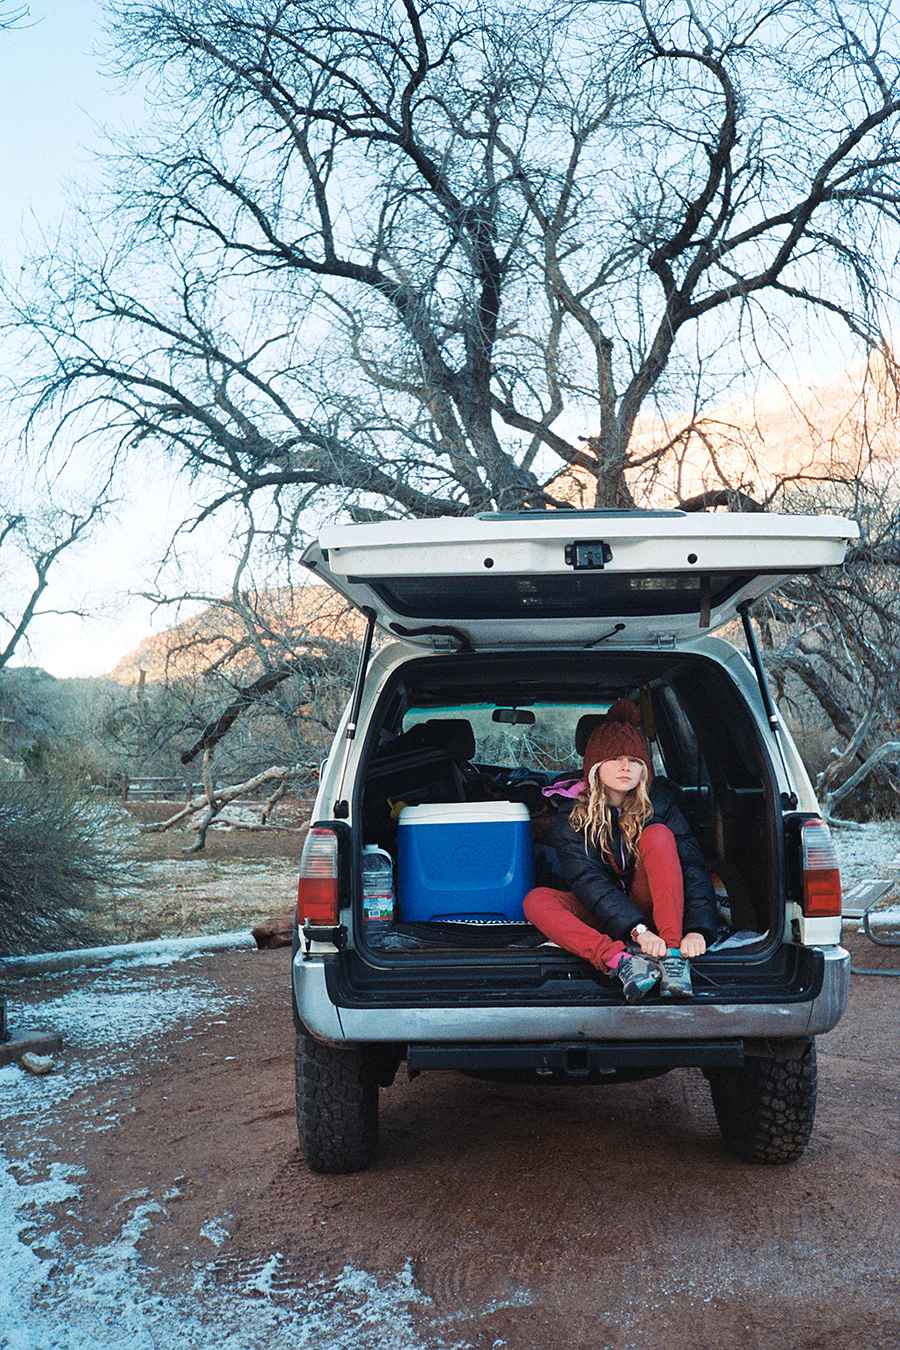 We made it to Zion in the dark of night, so after grabbing some pizza in town we snuck into a campsite in the park to camp in the back of the 4runner again.